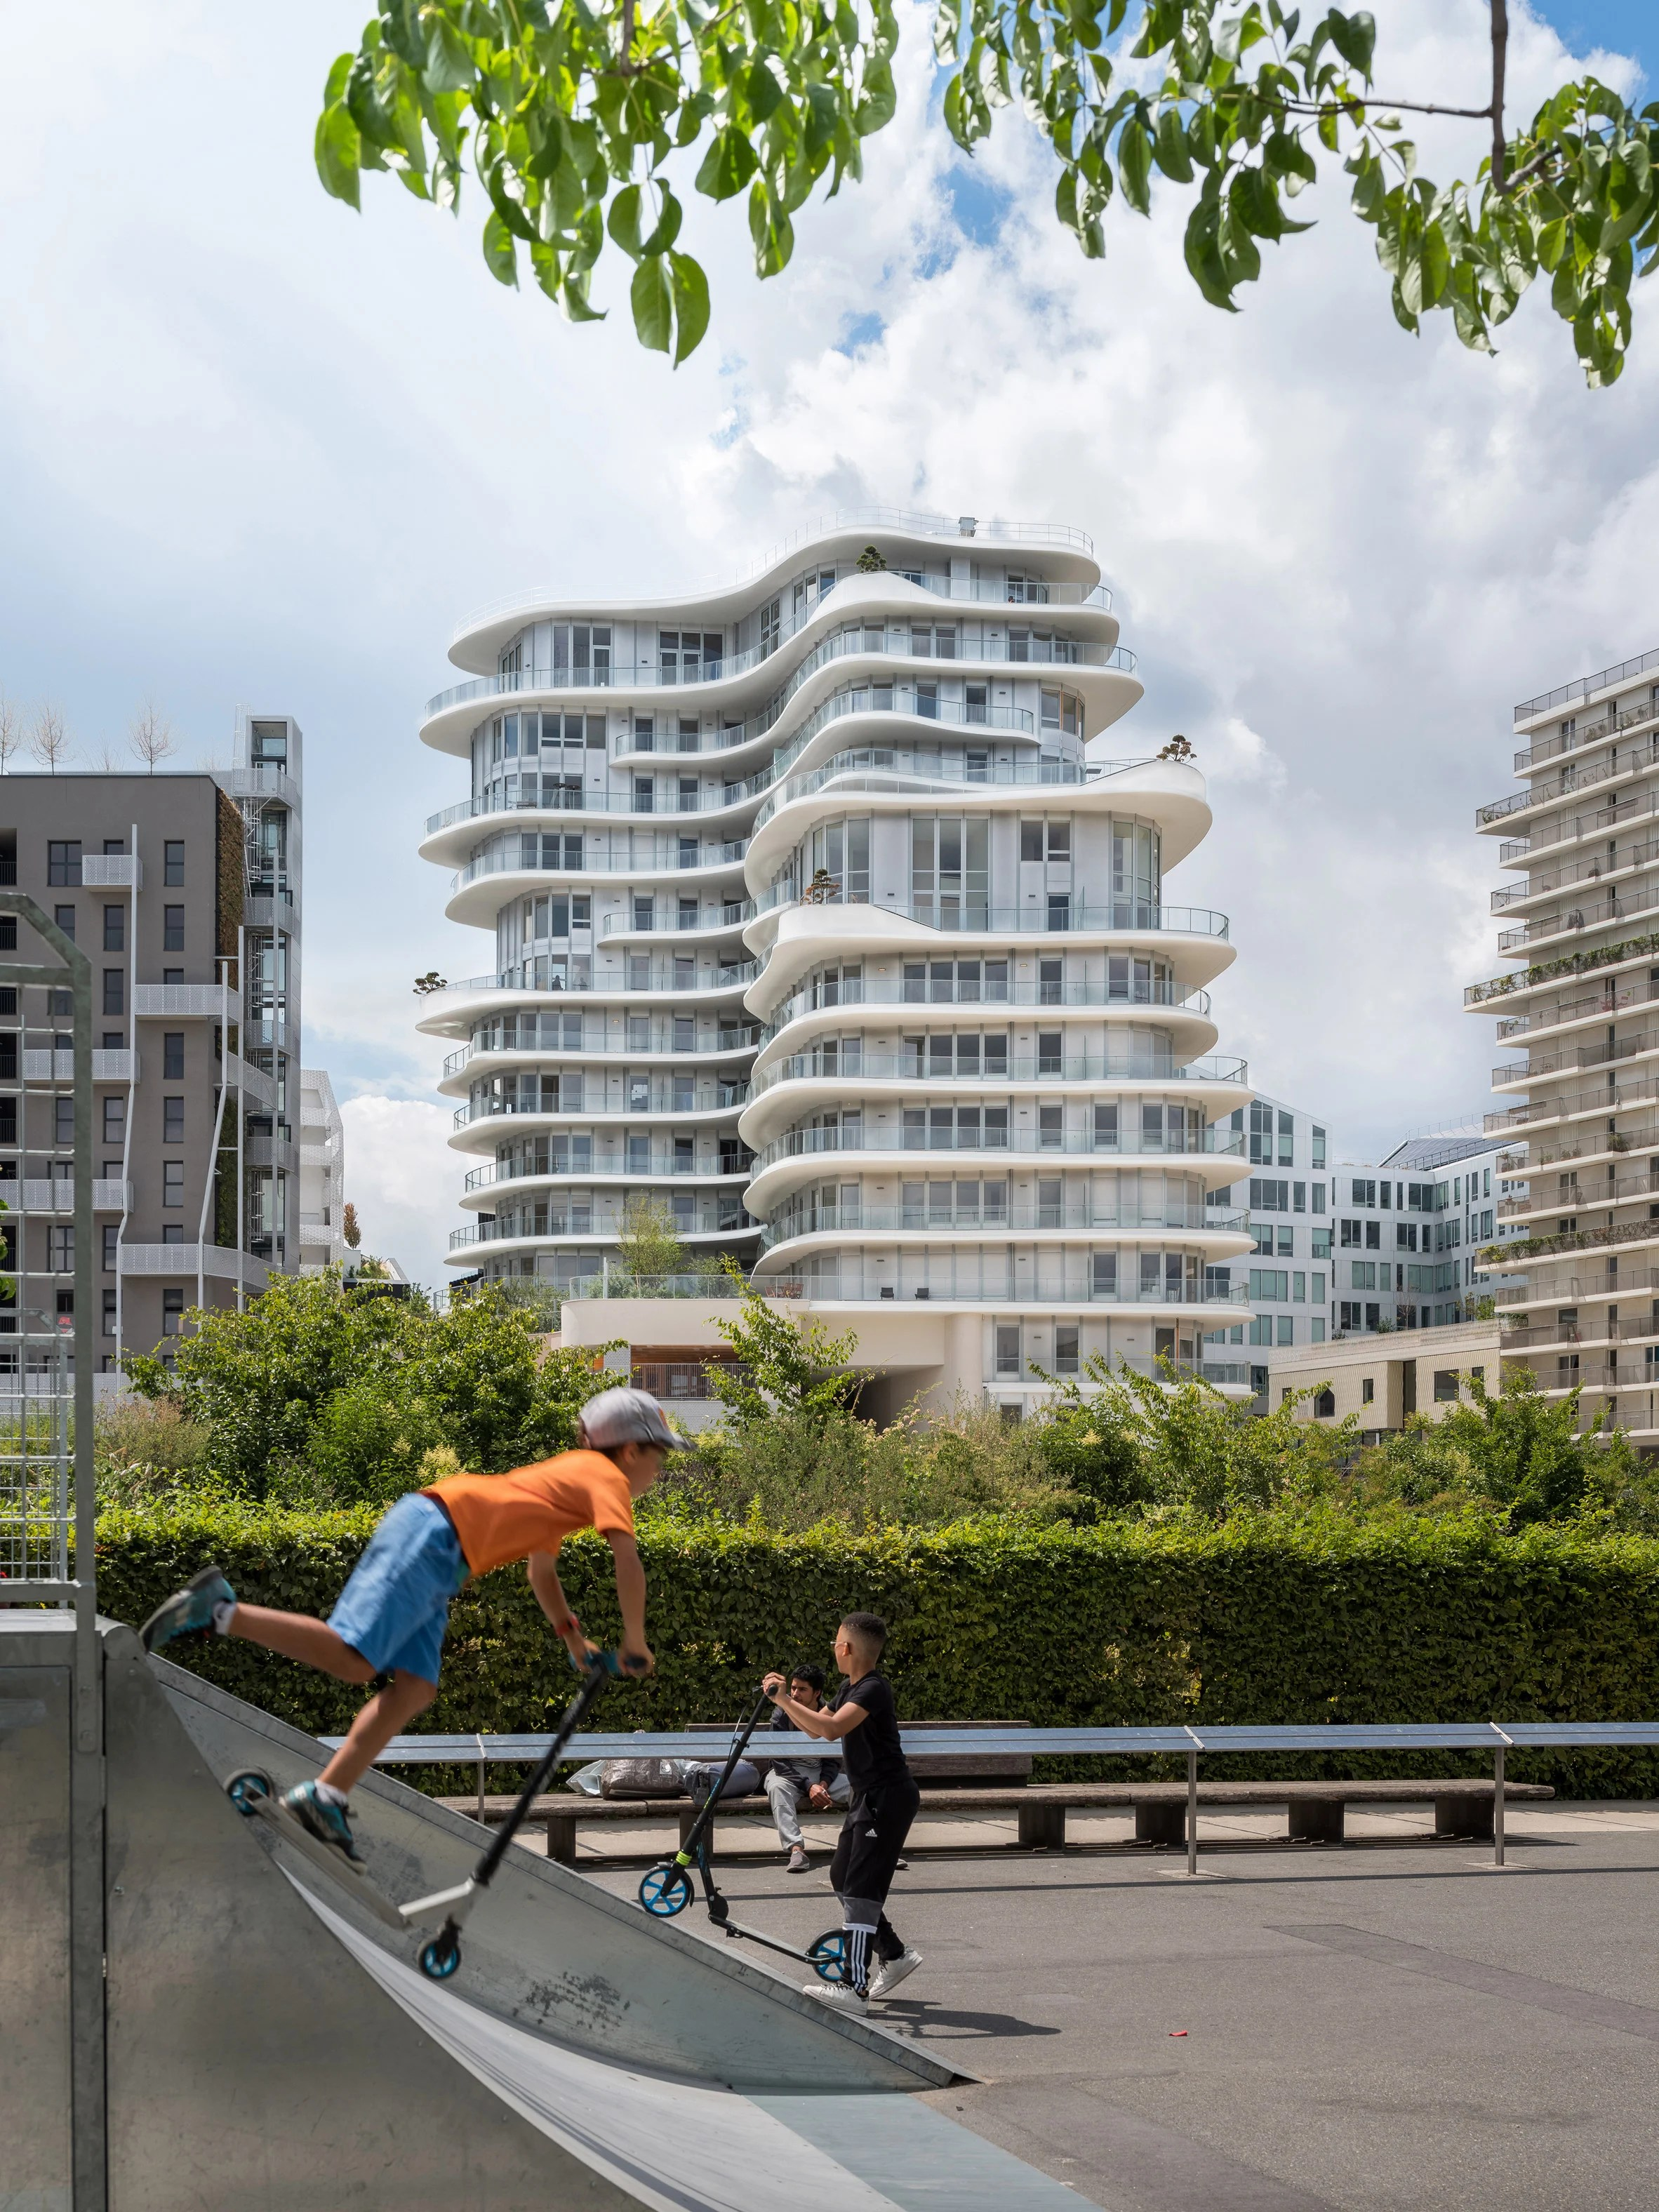 UNIC apartment tower in Paris by MAD and Biecher Architectes